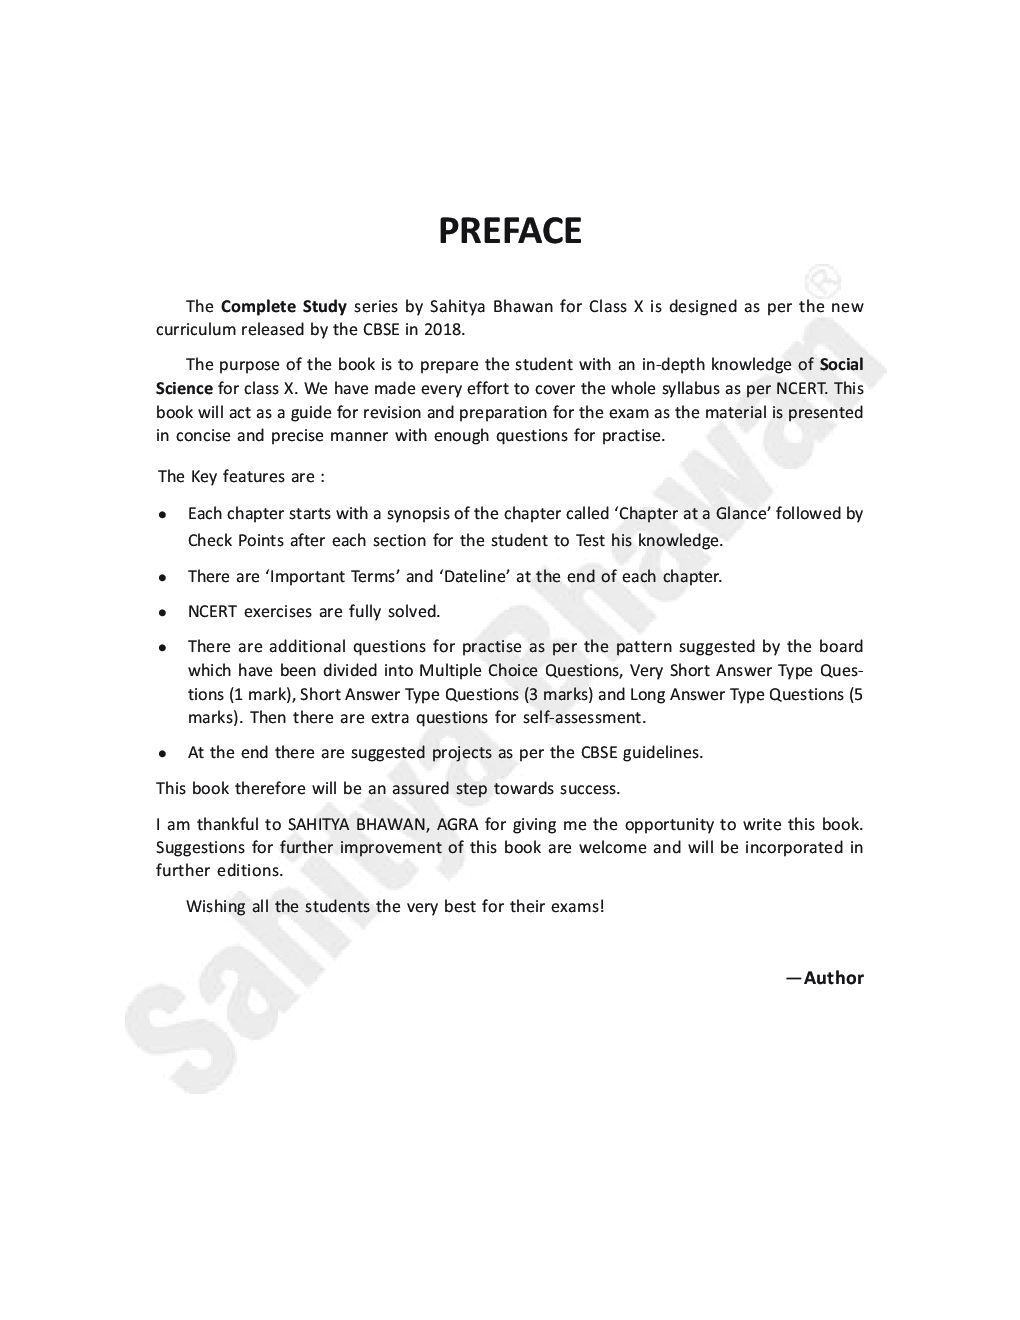 CBSE Complete Study Social Science For Class - X - Page 4